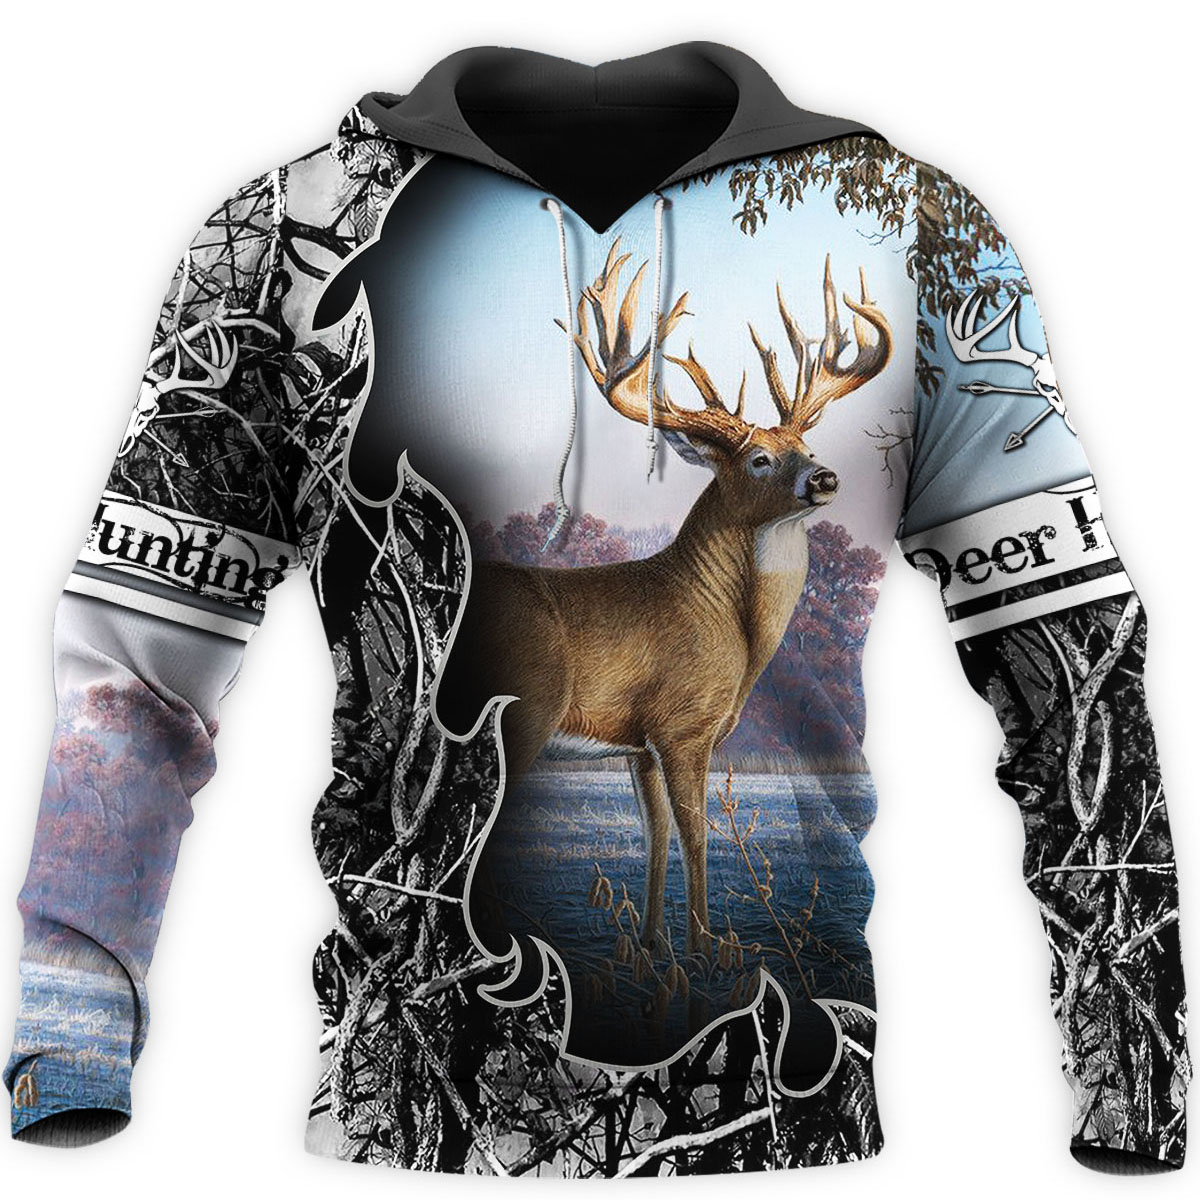 Camo AMO HUNTING ANIMALS Deer ART 3D Hoodies Hoodie Men Women New Fashion Hooded Sweatshirt Long Sleeve Casual Pullover-4